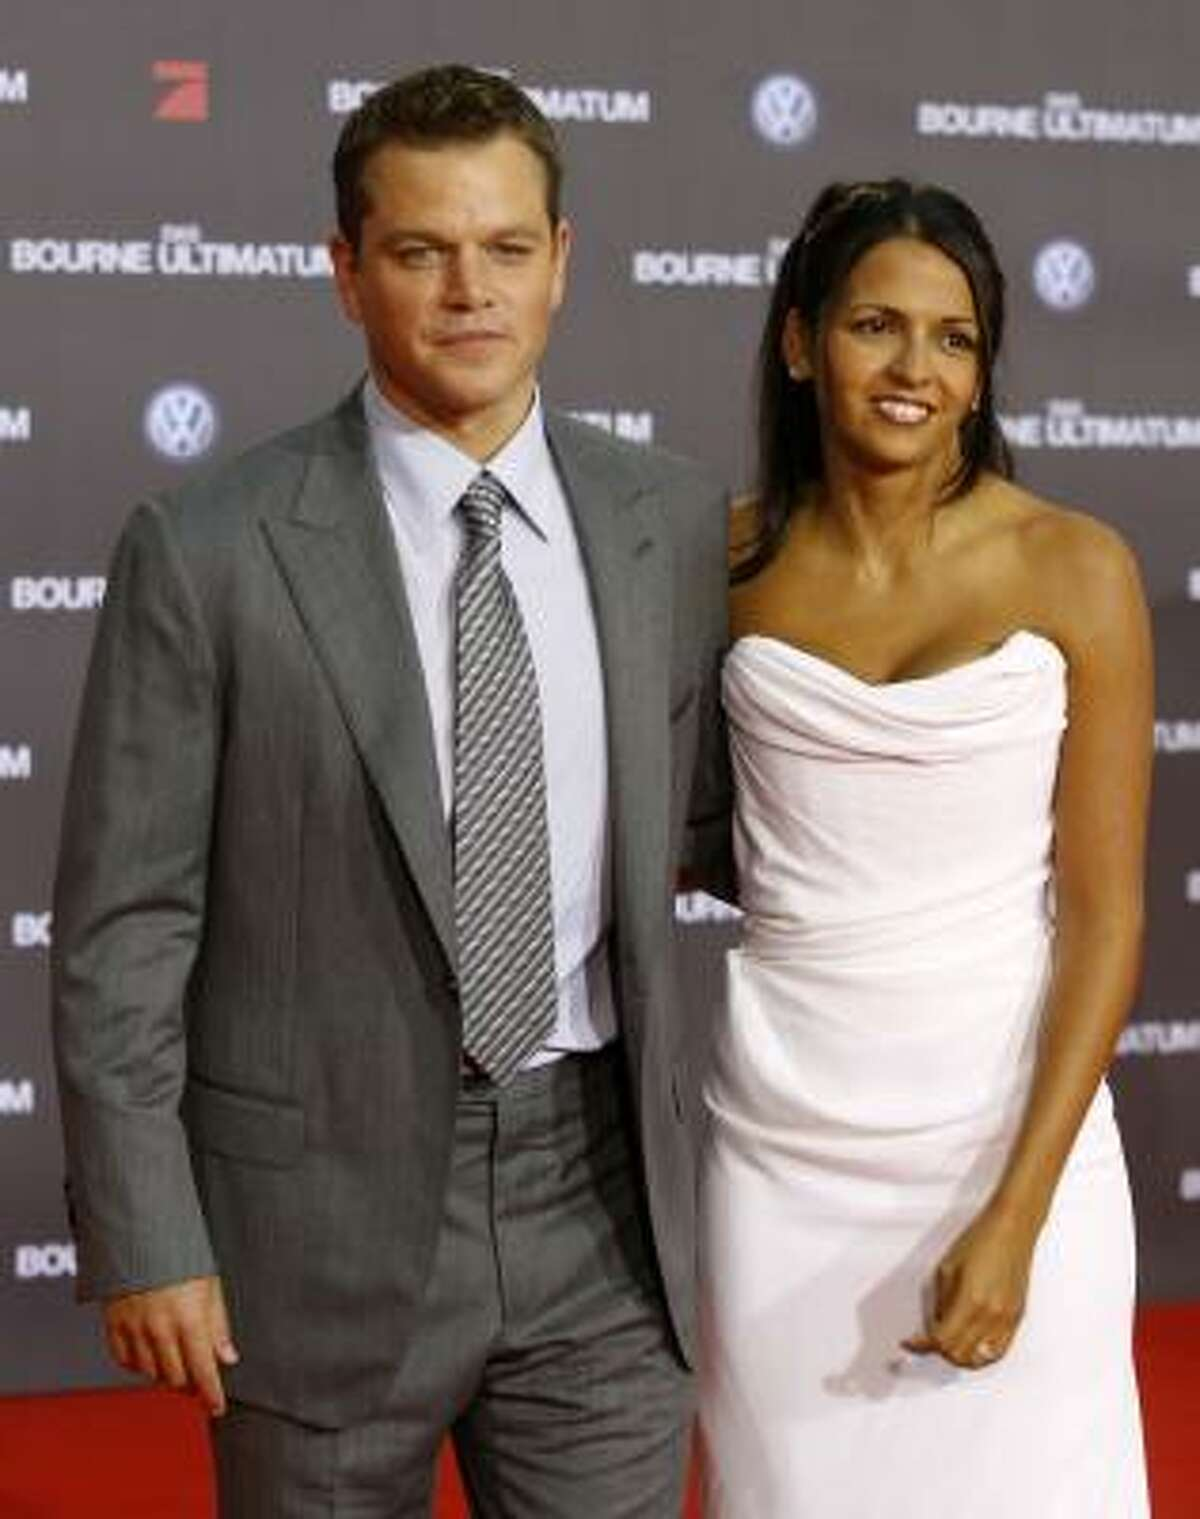 Matt Damon became stepdad to then 7-year-old Alexia when he married Luciana Bozan in 2006.